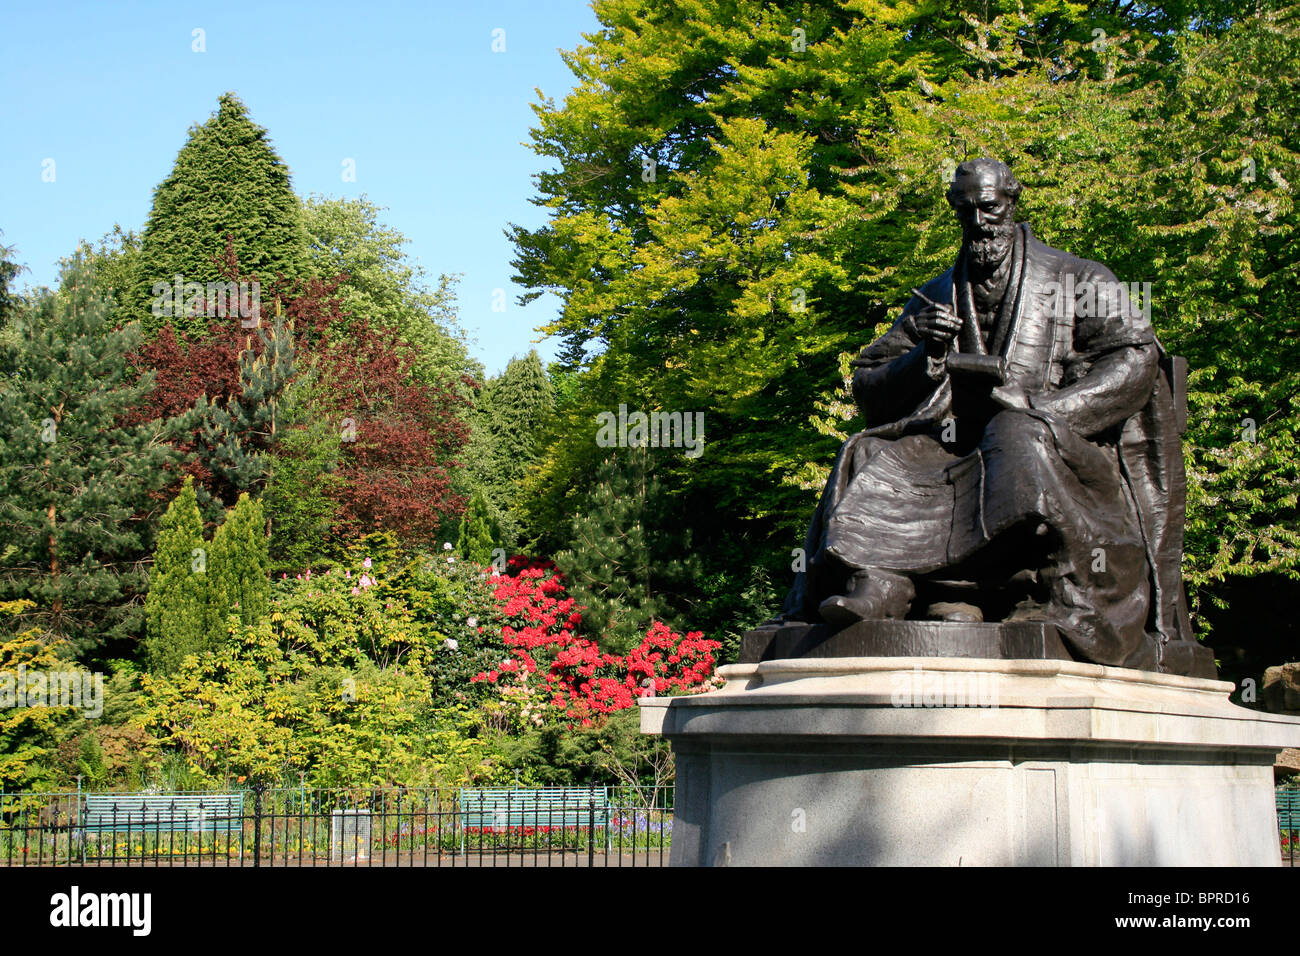 Bronze statue of William Thomson Lord Kelvin (1824-1907) in academic robes with a notebook and pen, Kelvingrove - Stock Image